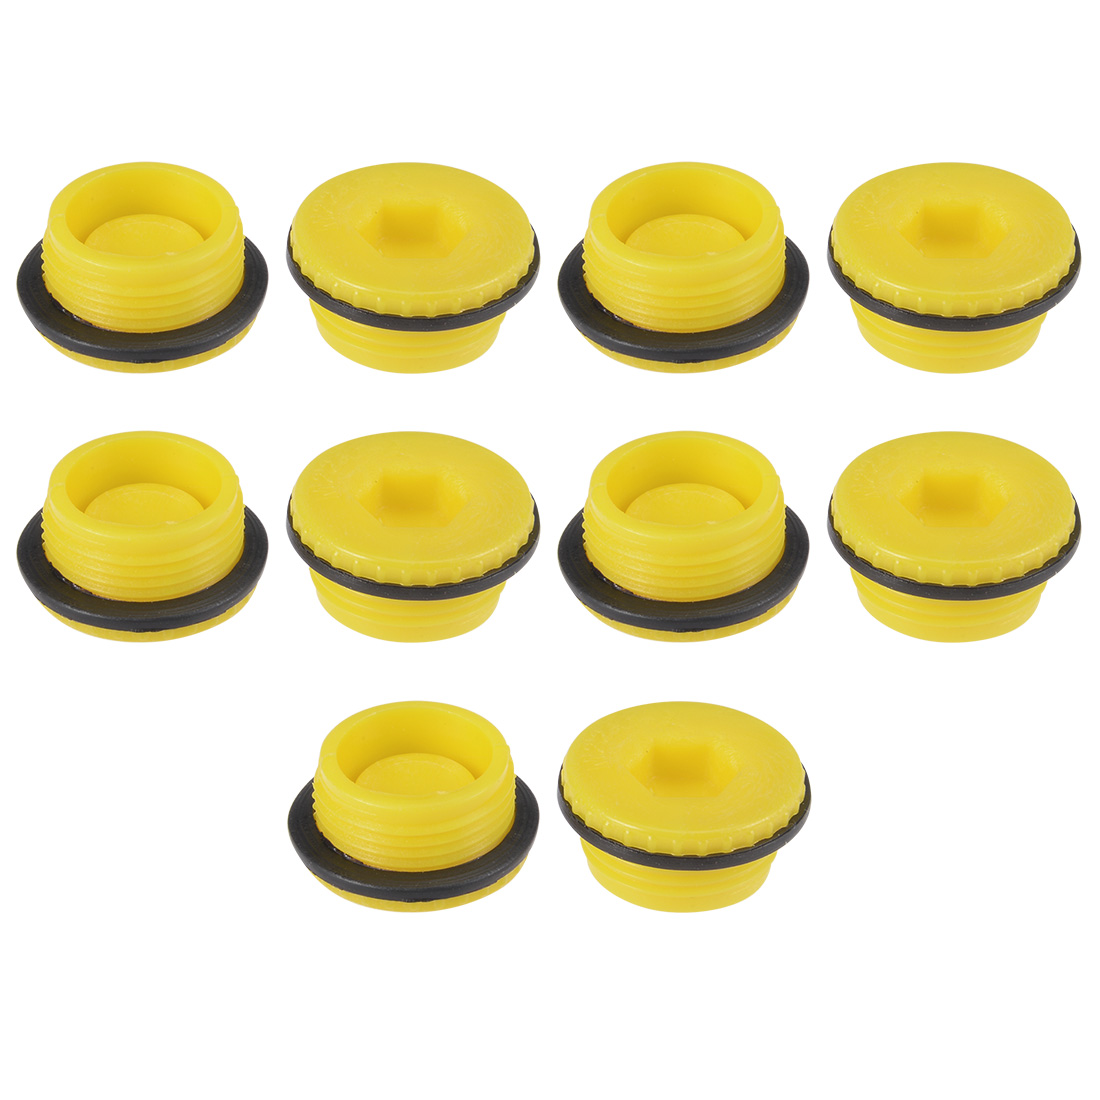 MLD-M22 M22 Hex Socket Design PE Plastic Male Threaded Sealing Cap Yellow 10pcs